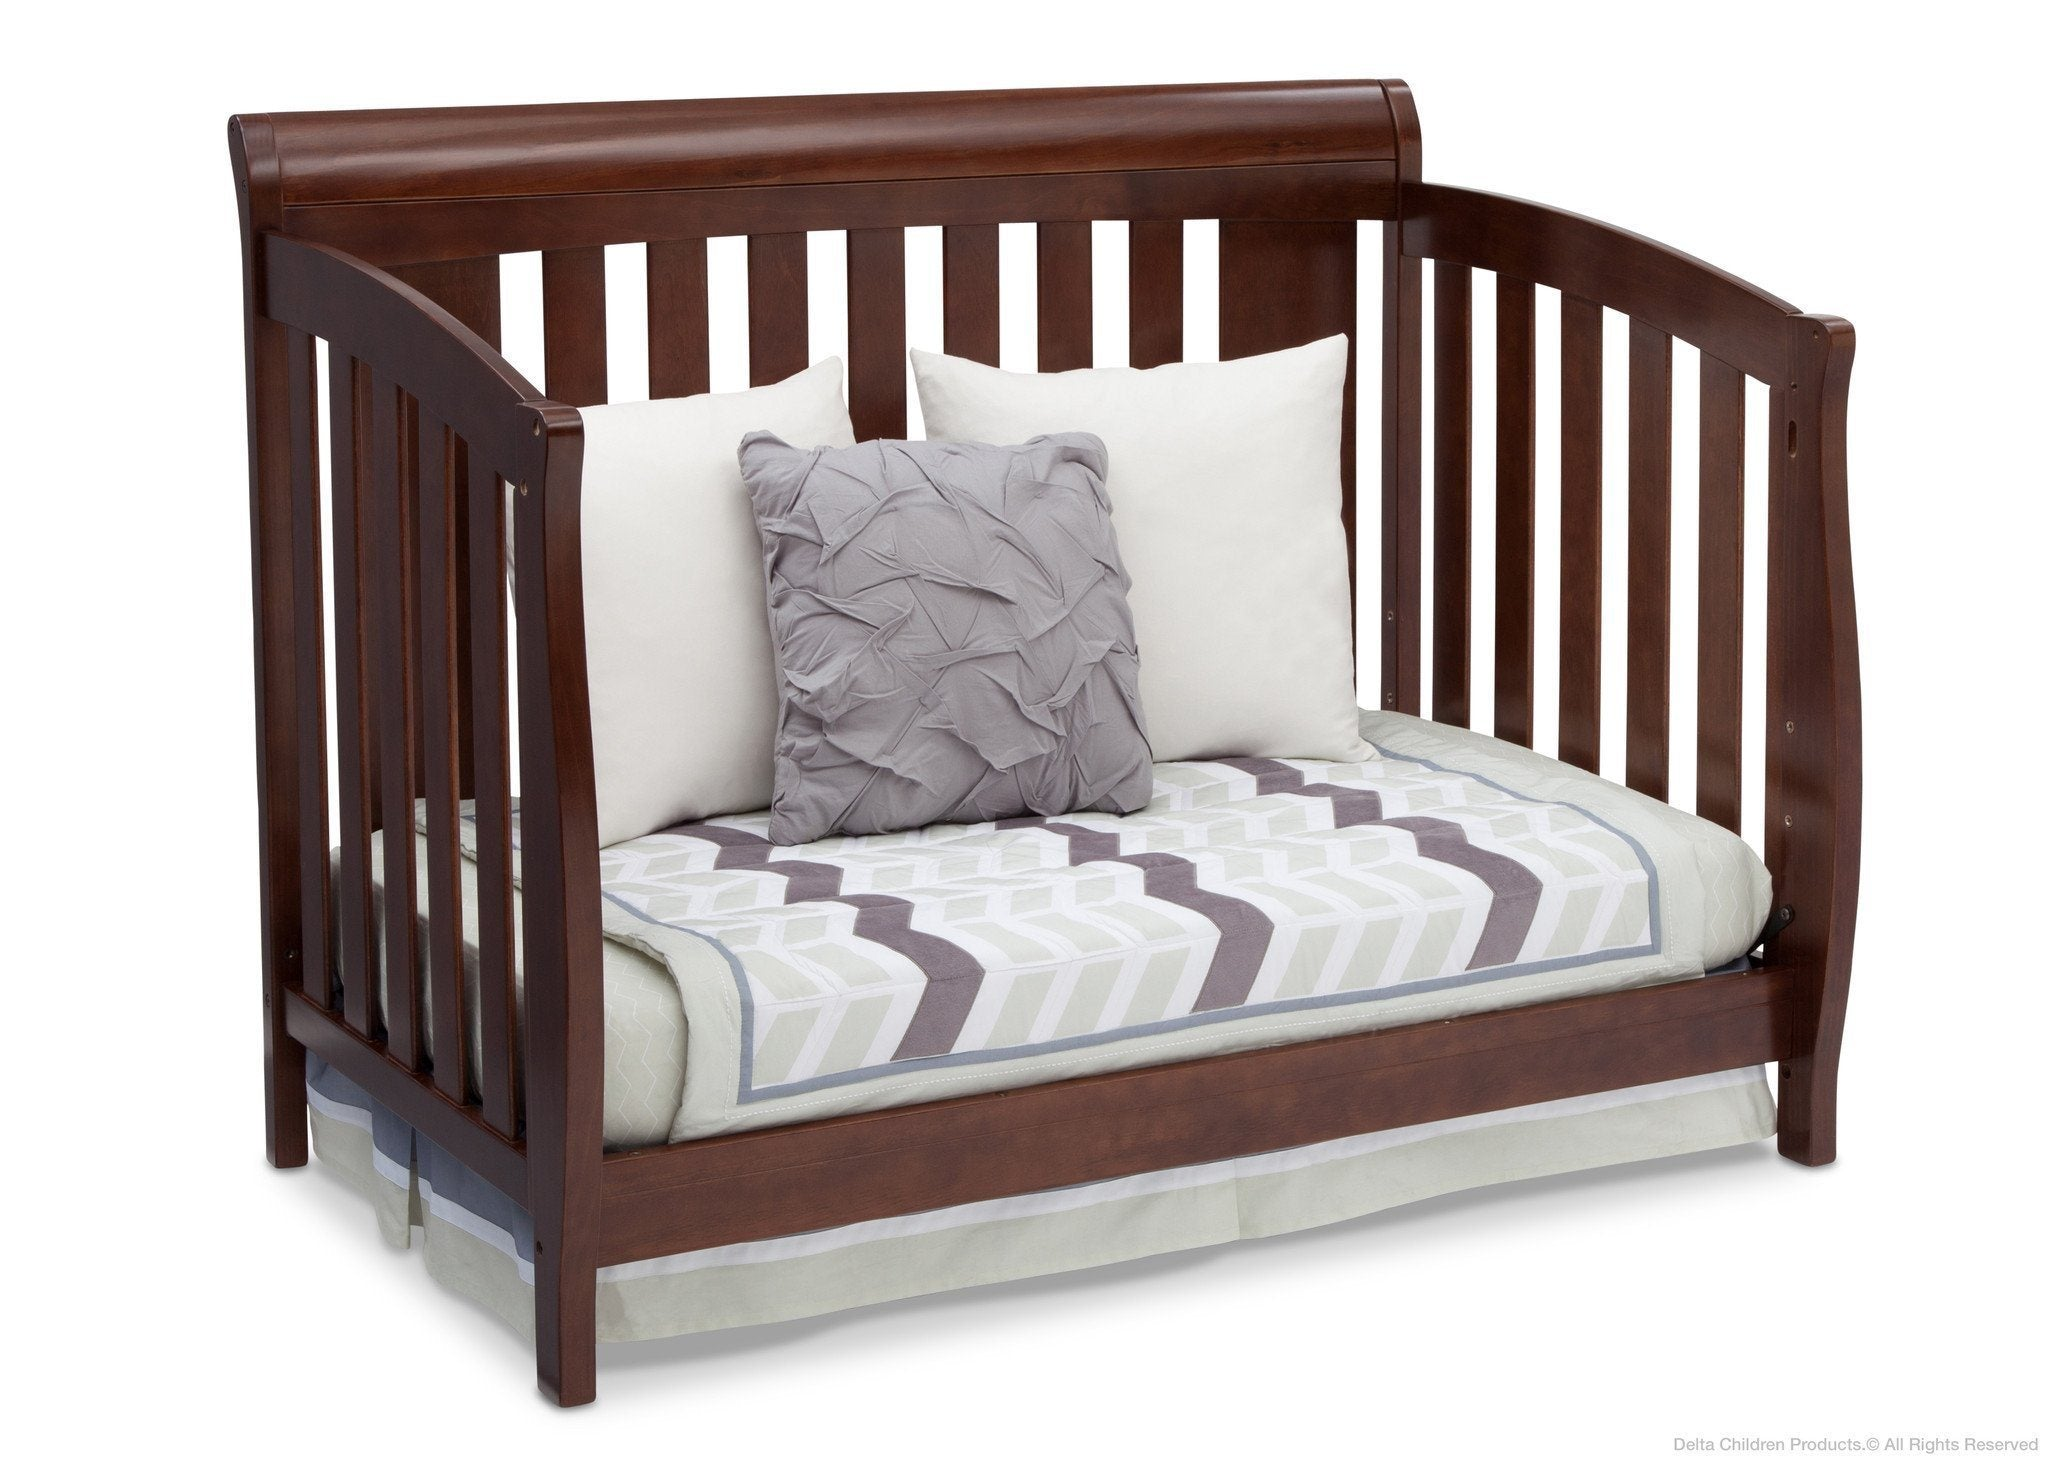 Delta Children Chocolate (204) Clermont 4-in-1 Crib, Day Bed Conversion b4b